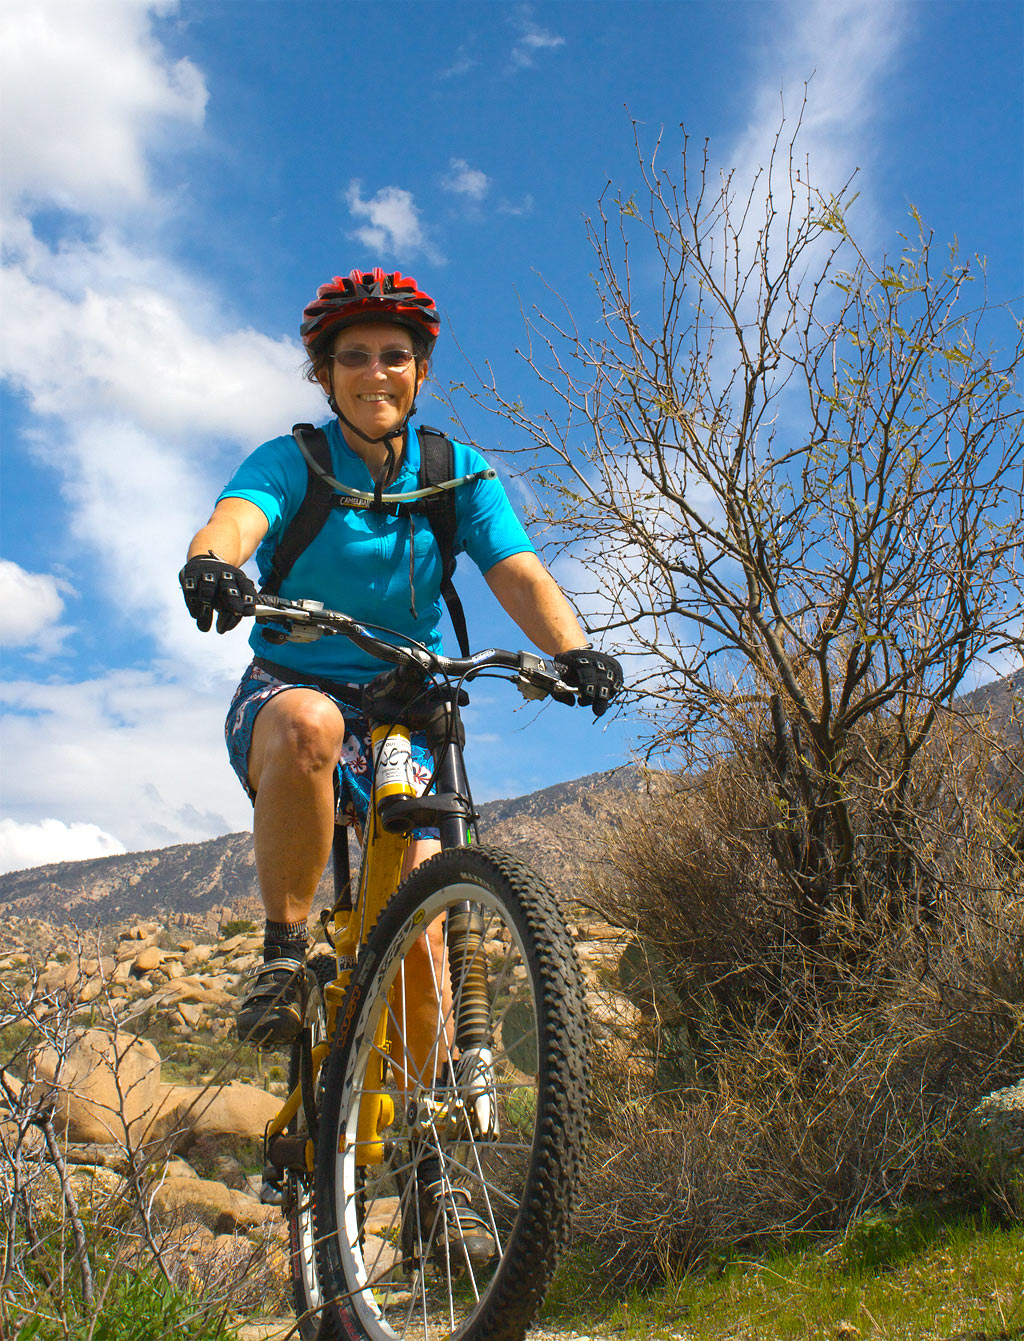 Saturday:Trails are excellent, desert ready to 'pop'-img_7397_mtbr.jpg